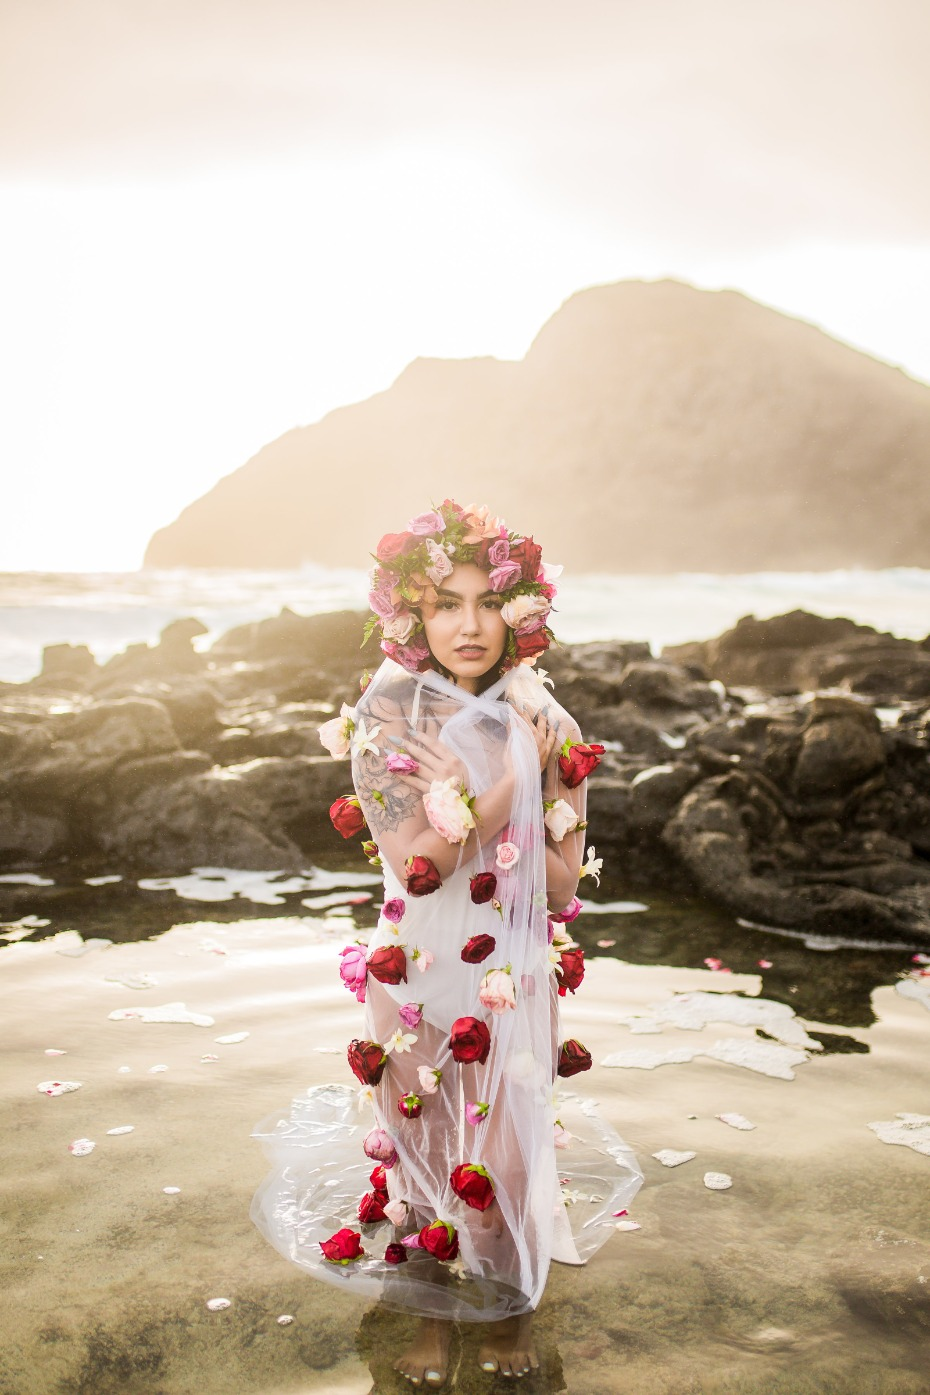 Bridal portrait session in Hawaii